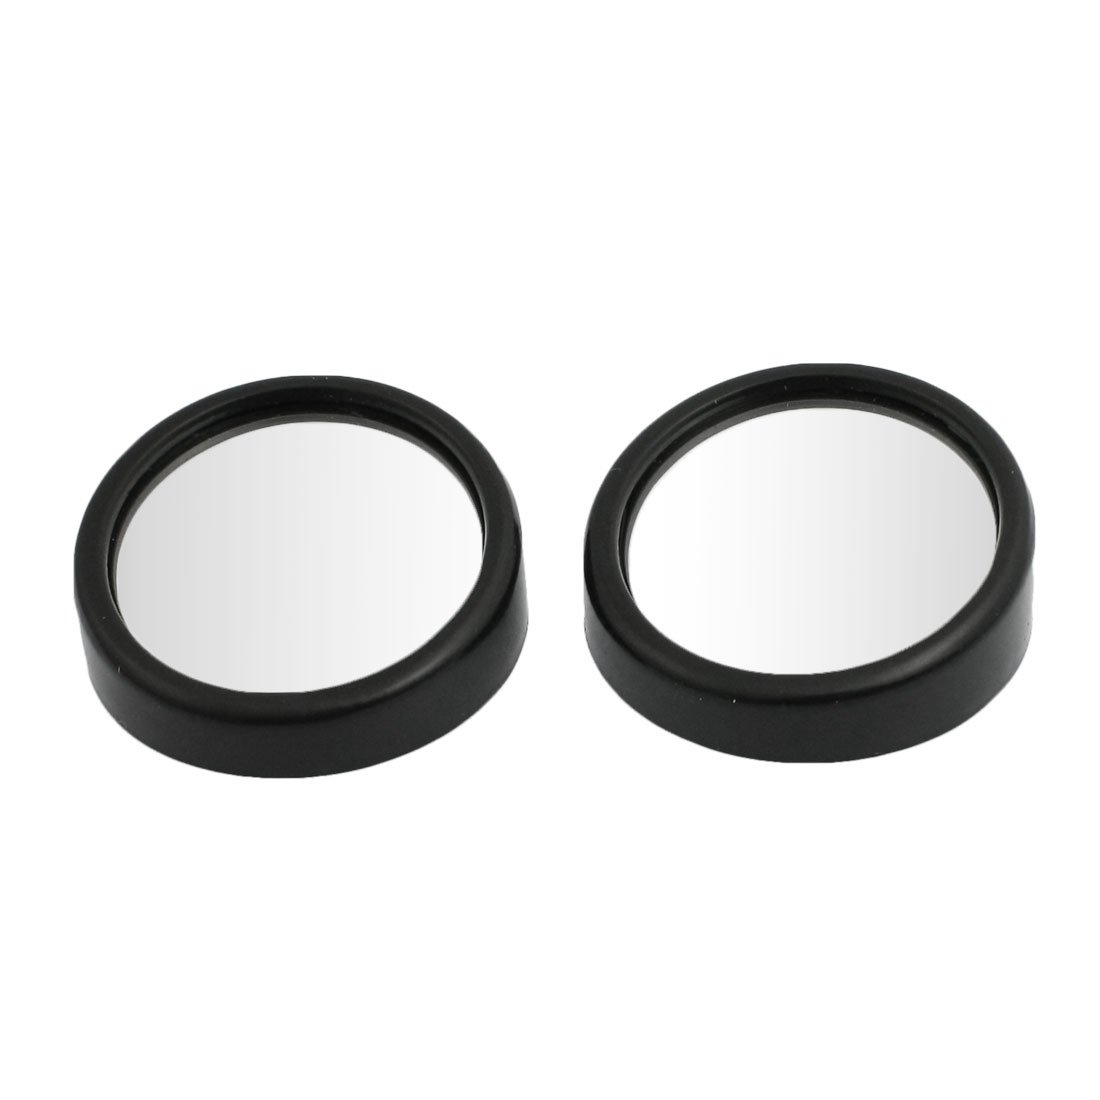 uxcell® Car Auto Truck 2.2' Round Wide Angle Blind Spot Mirror Black 2 Pcs